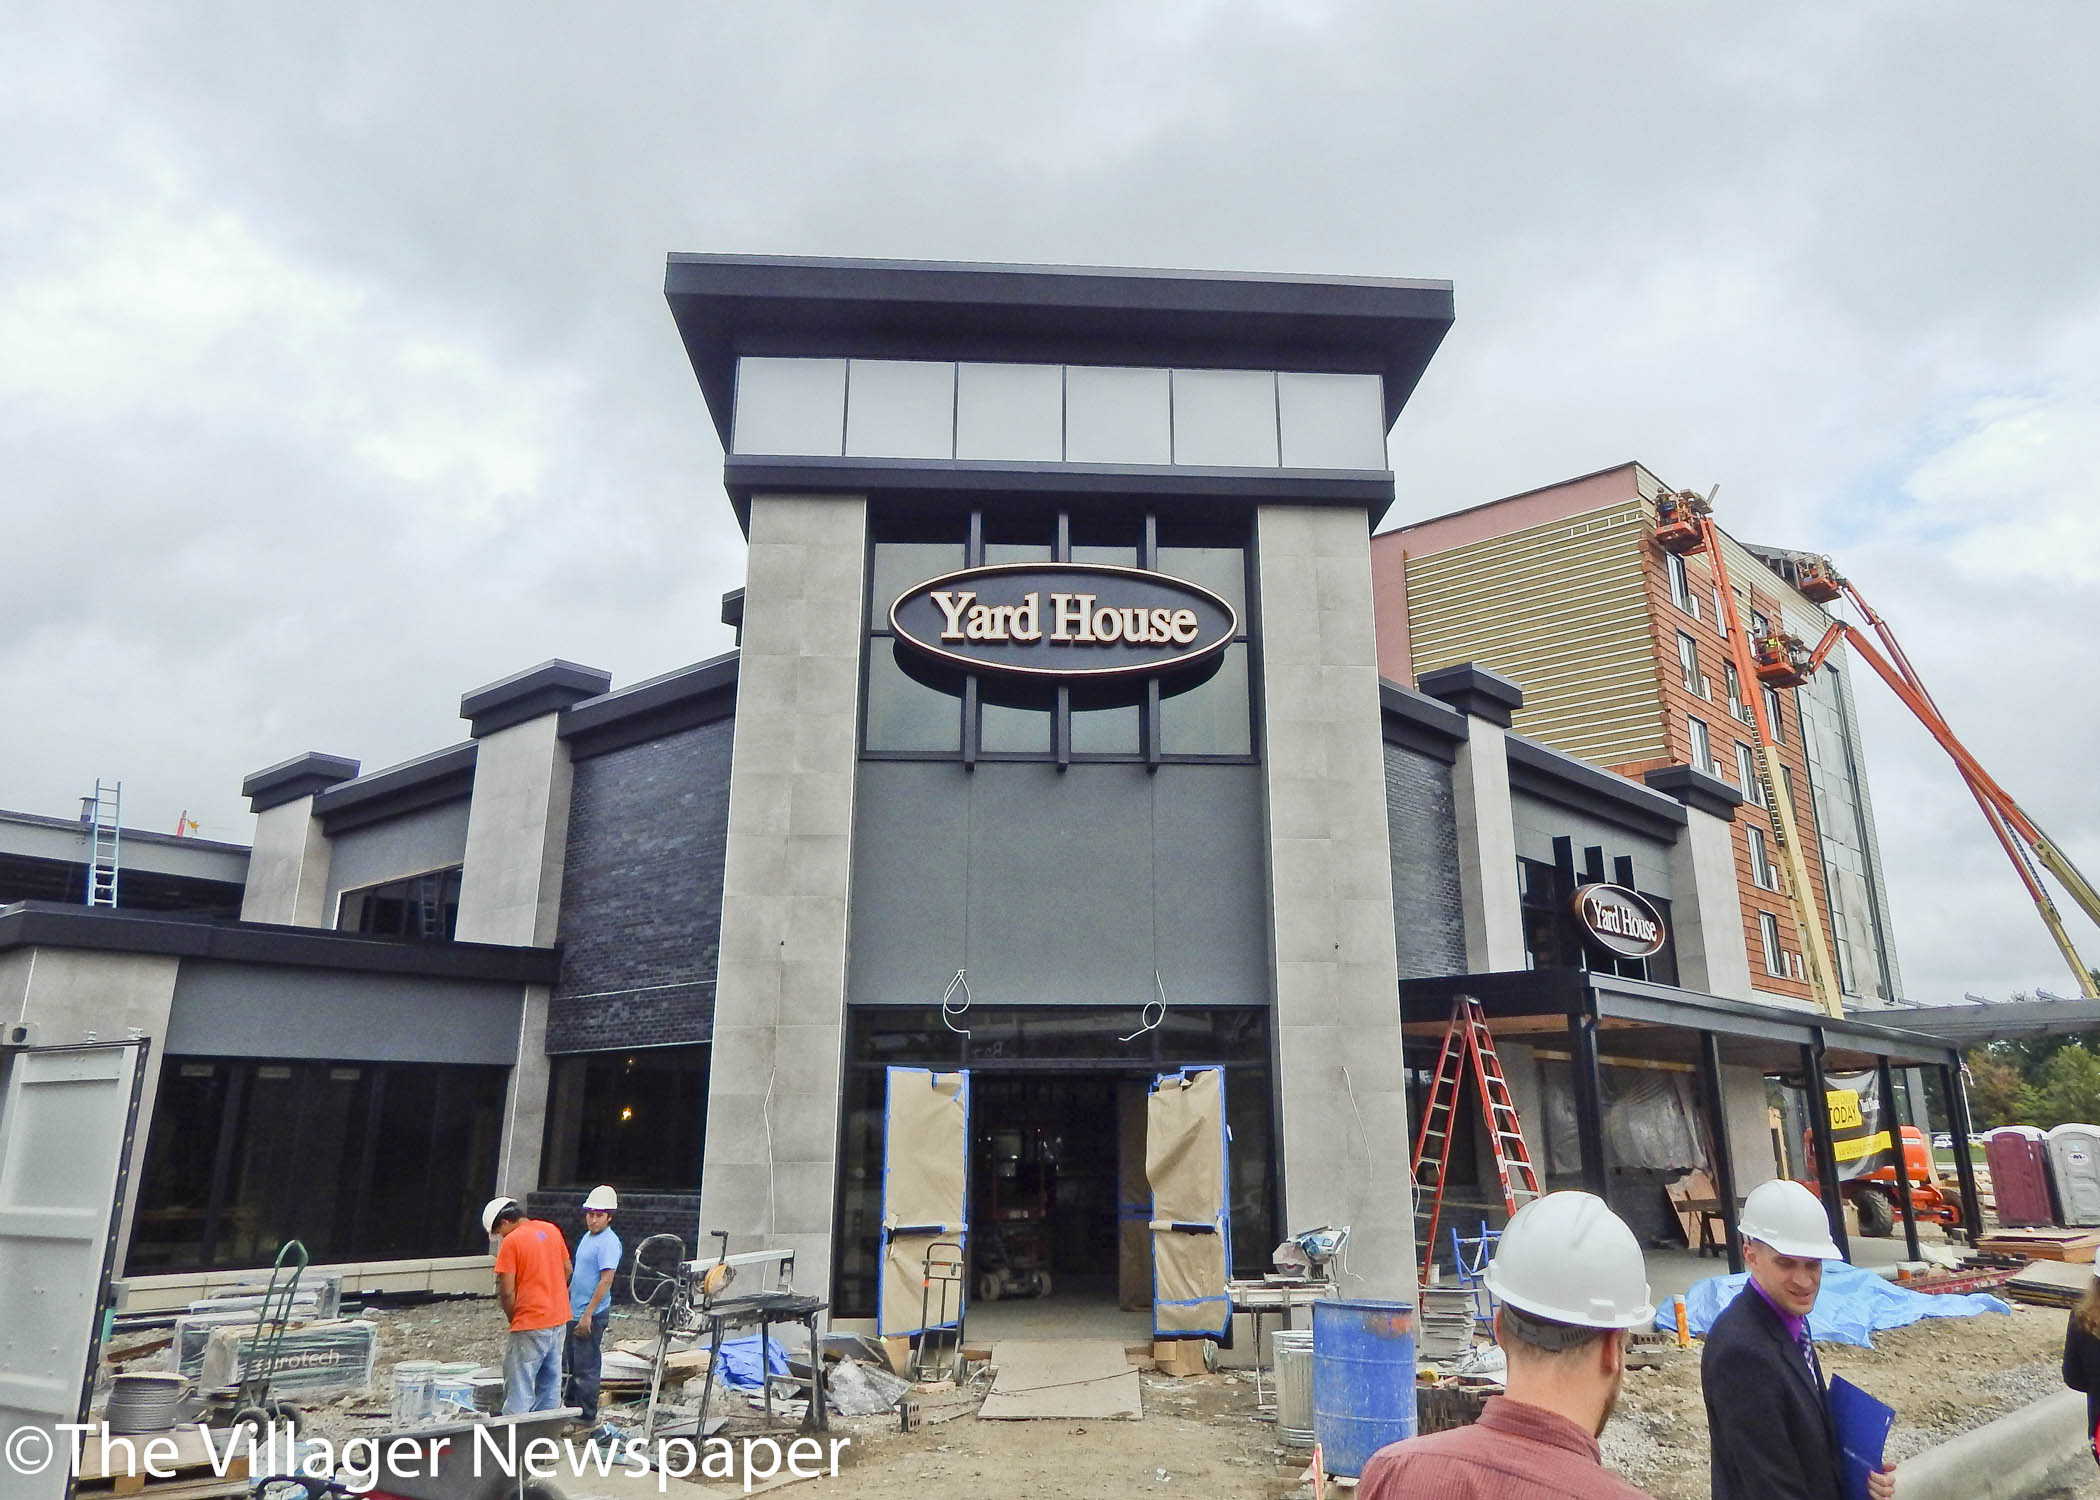 Yardhouse Restaurant Fronts Hyatt Place Hotel As It Rises At The Square Outside Crocker Park S Regal